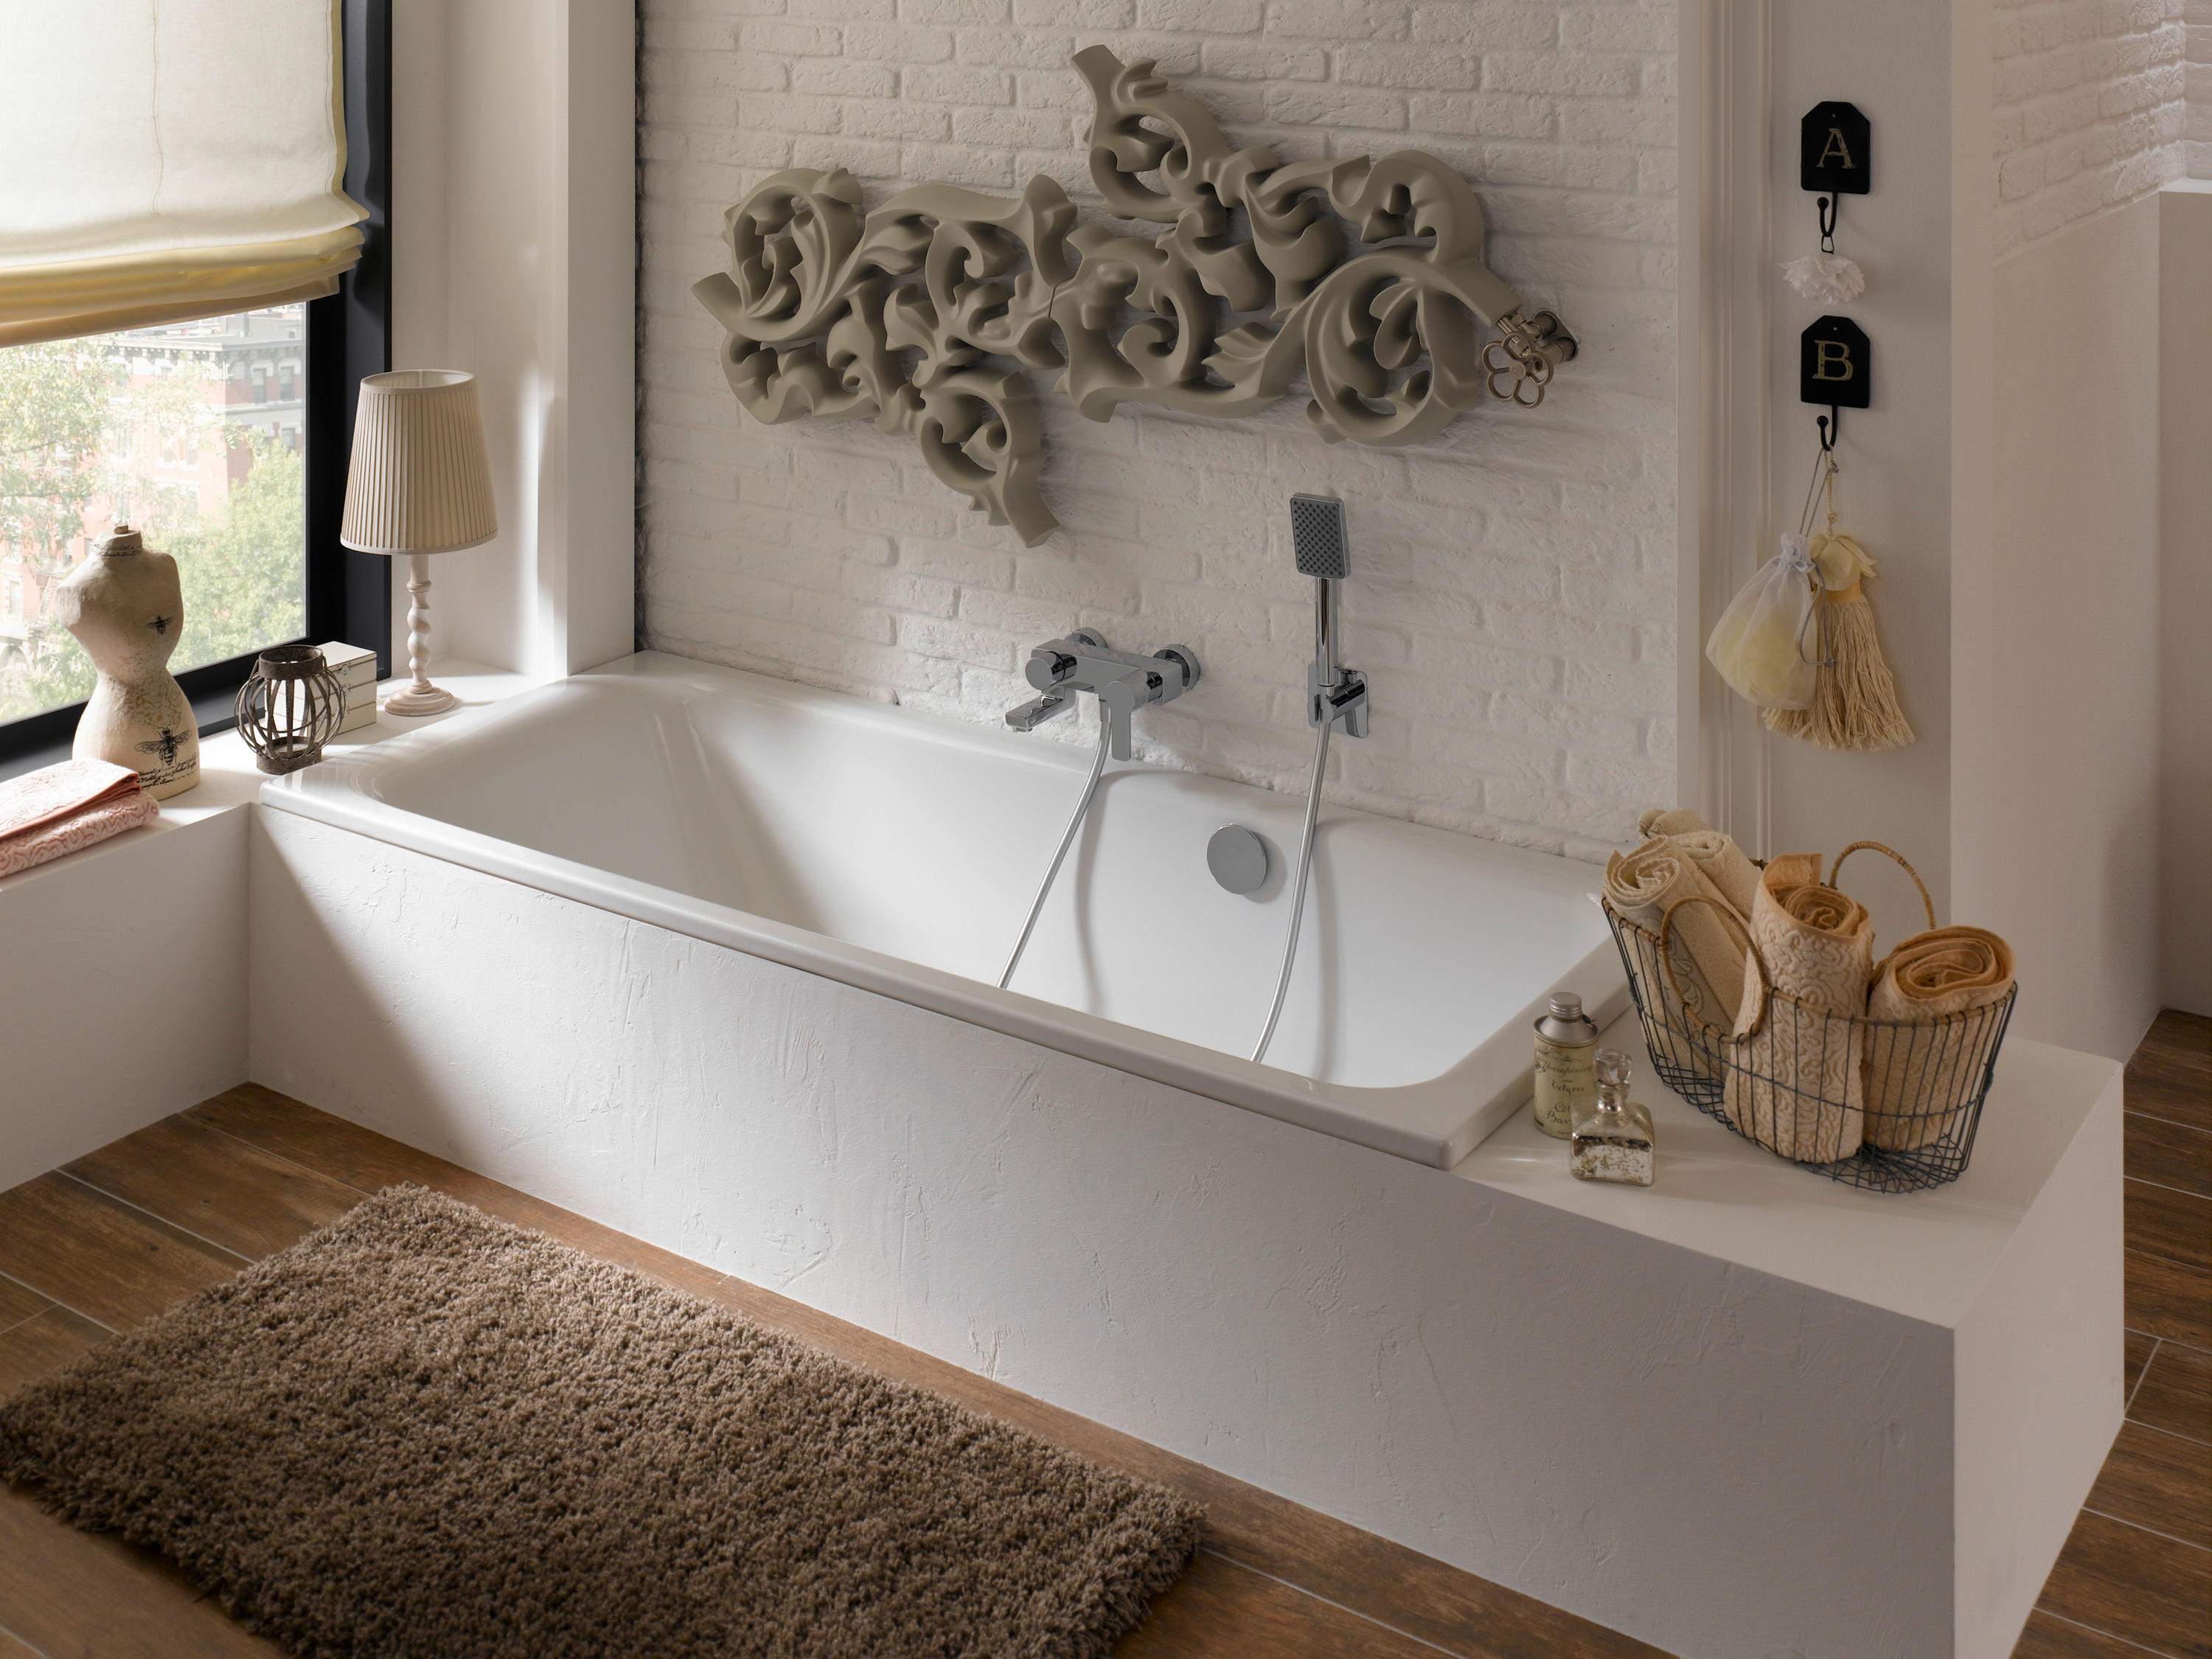 Badezimmer Bette Betteselect Badewannen Von Bette Architonic